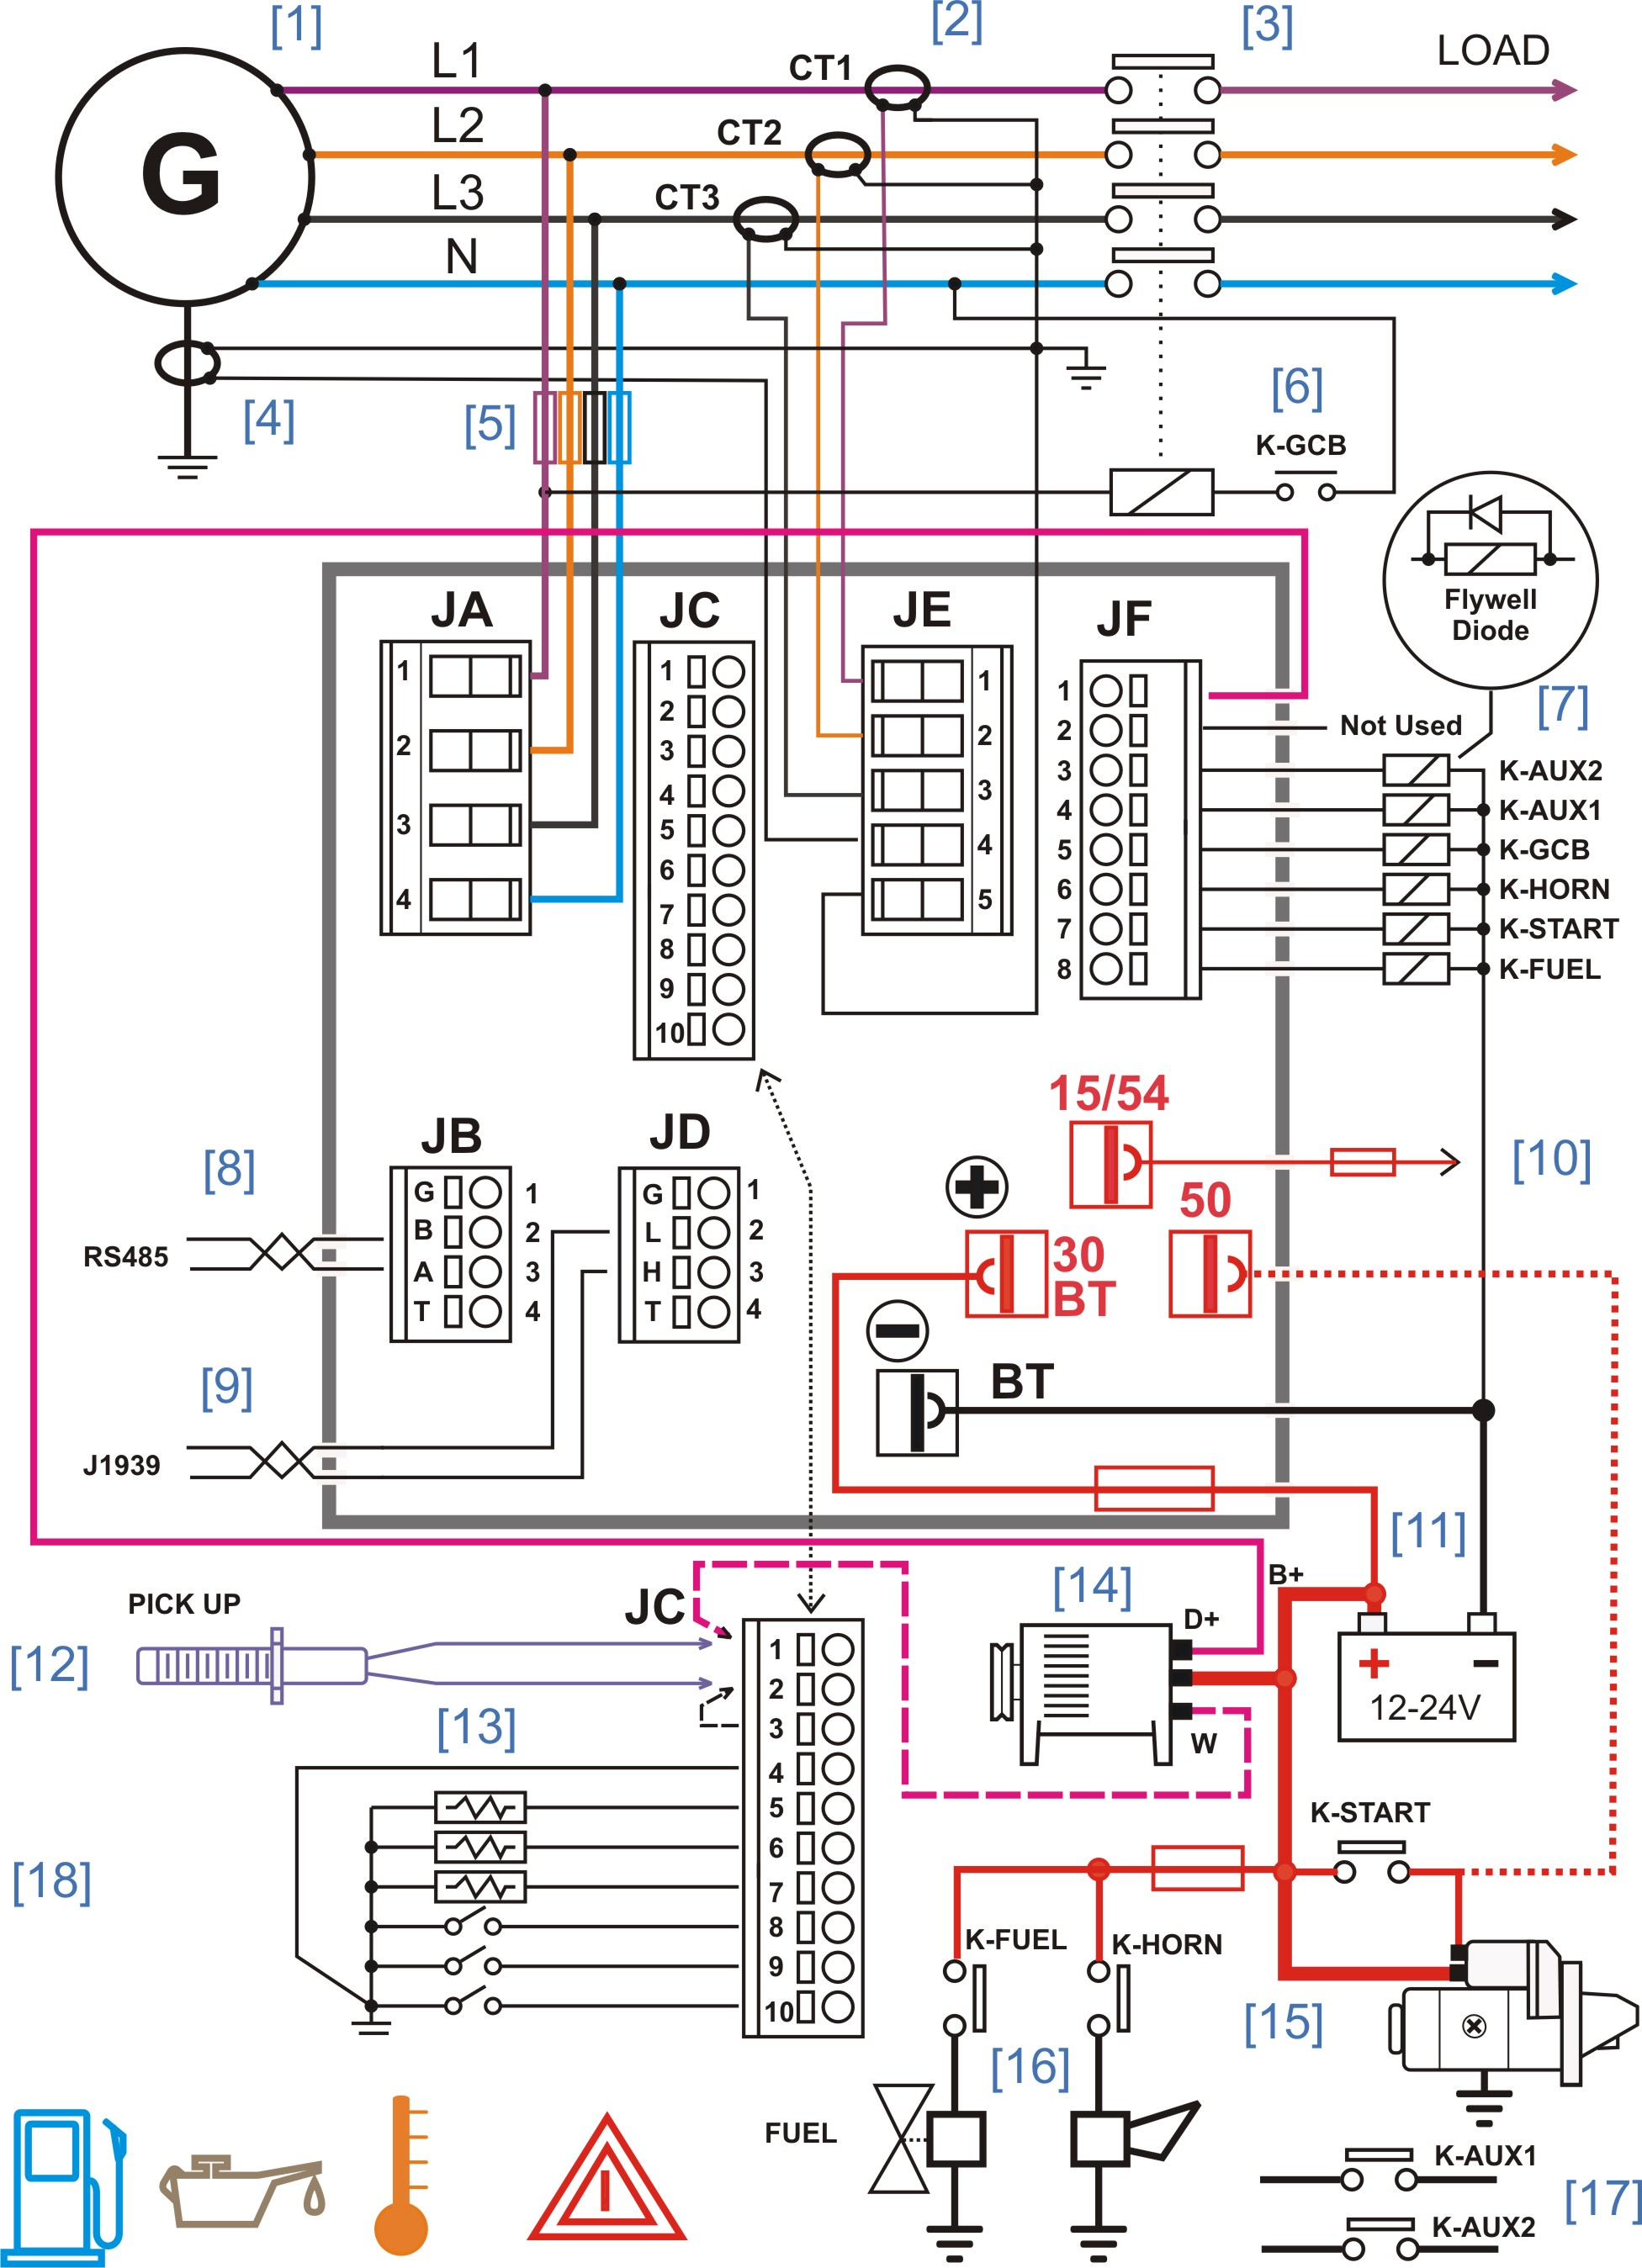 Control And Relay Panel Wiring Diagram : Diesel generator control panel wiring diagram genset